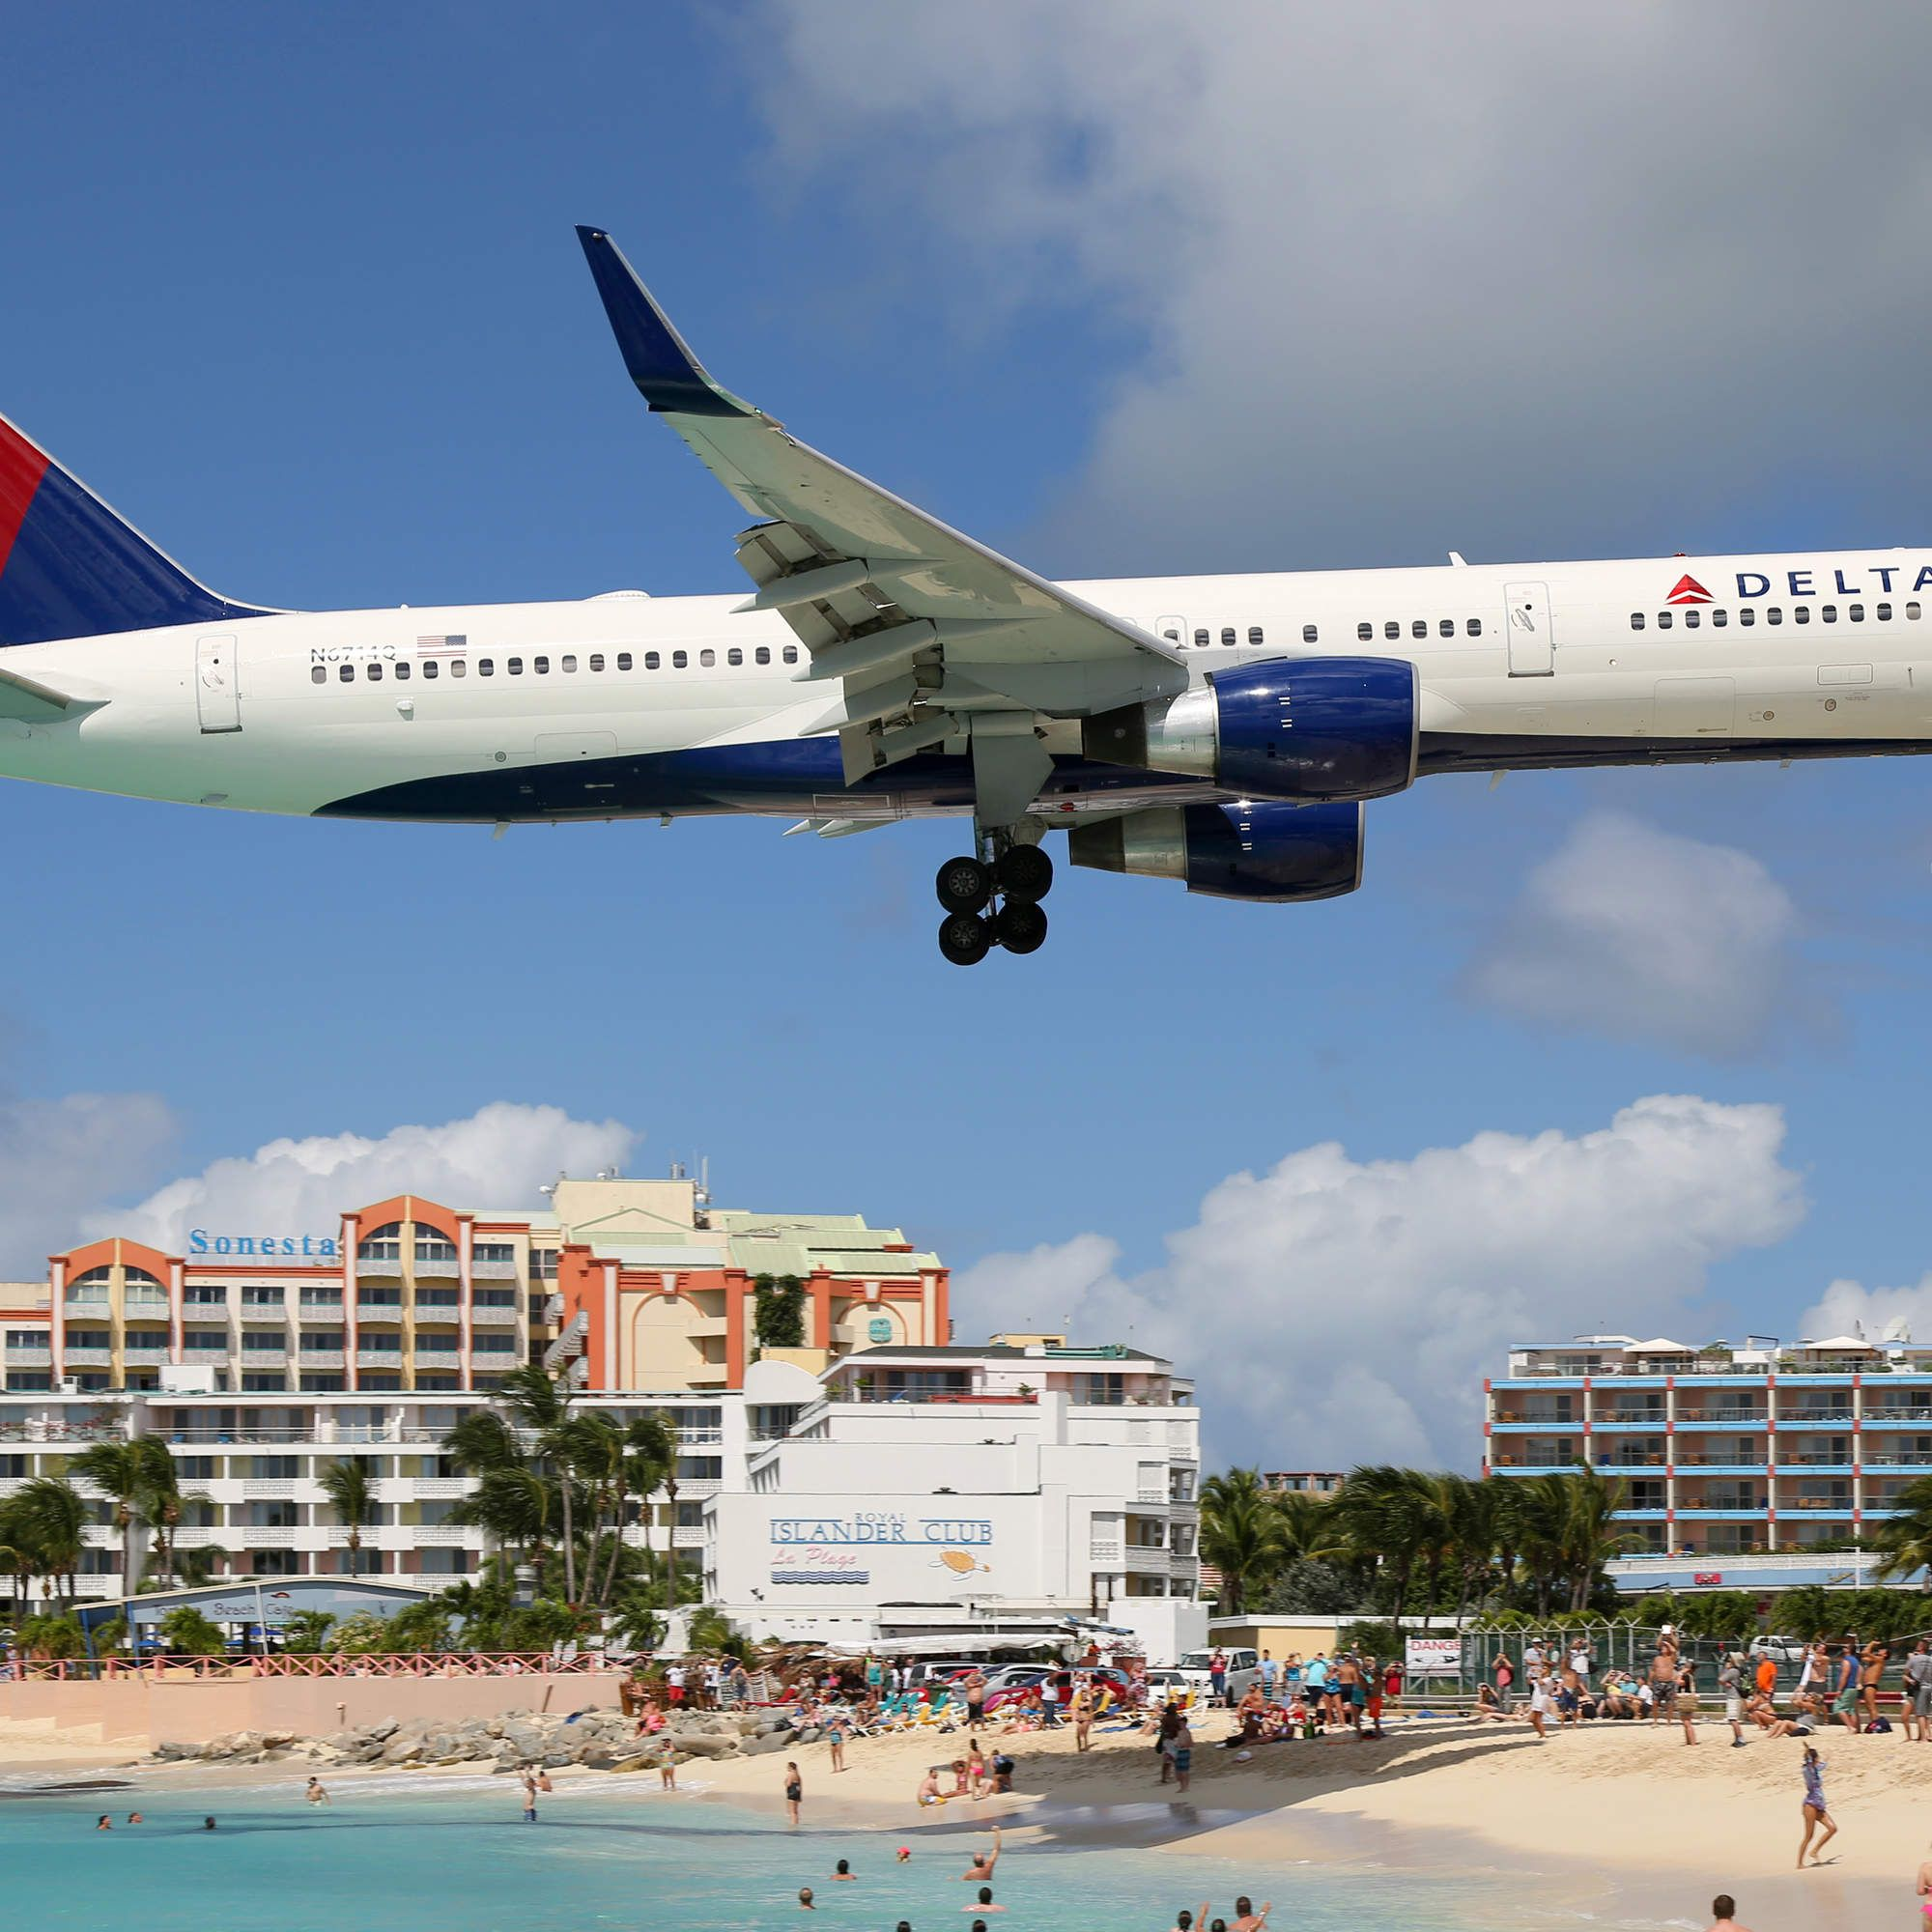 You get NOTHING! I said good day! Cheap airfare, Delta